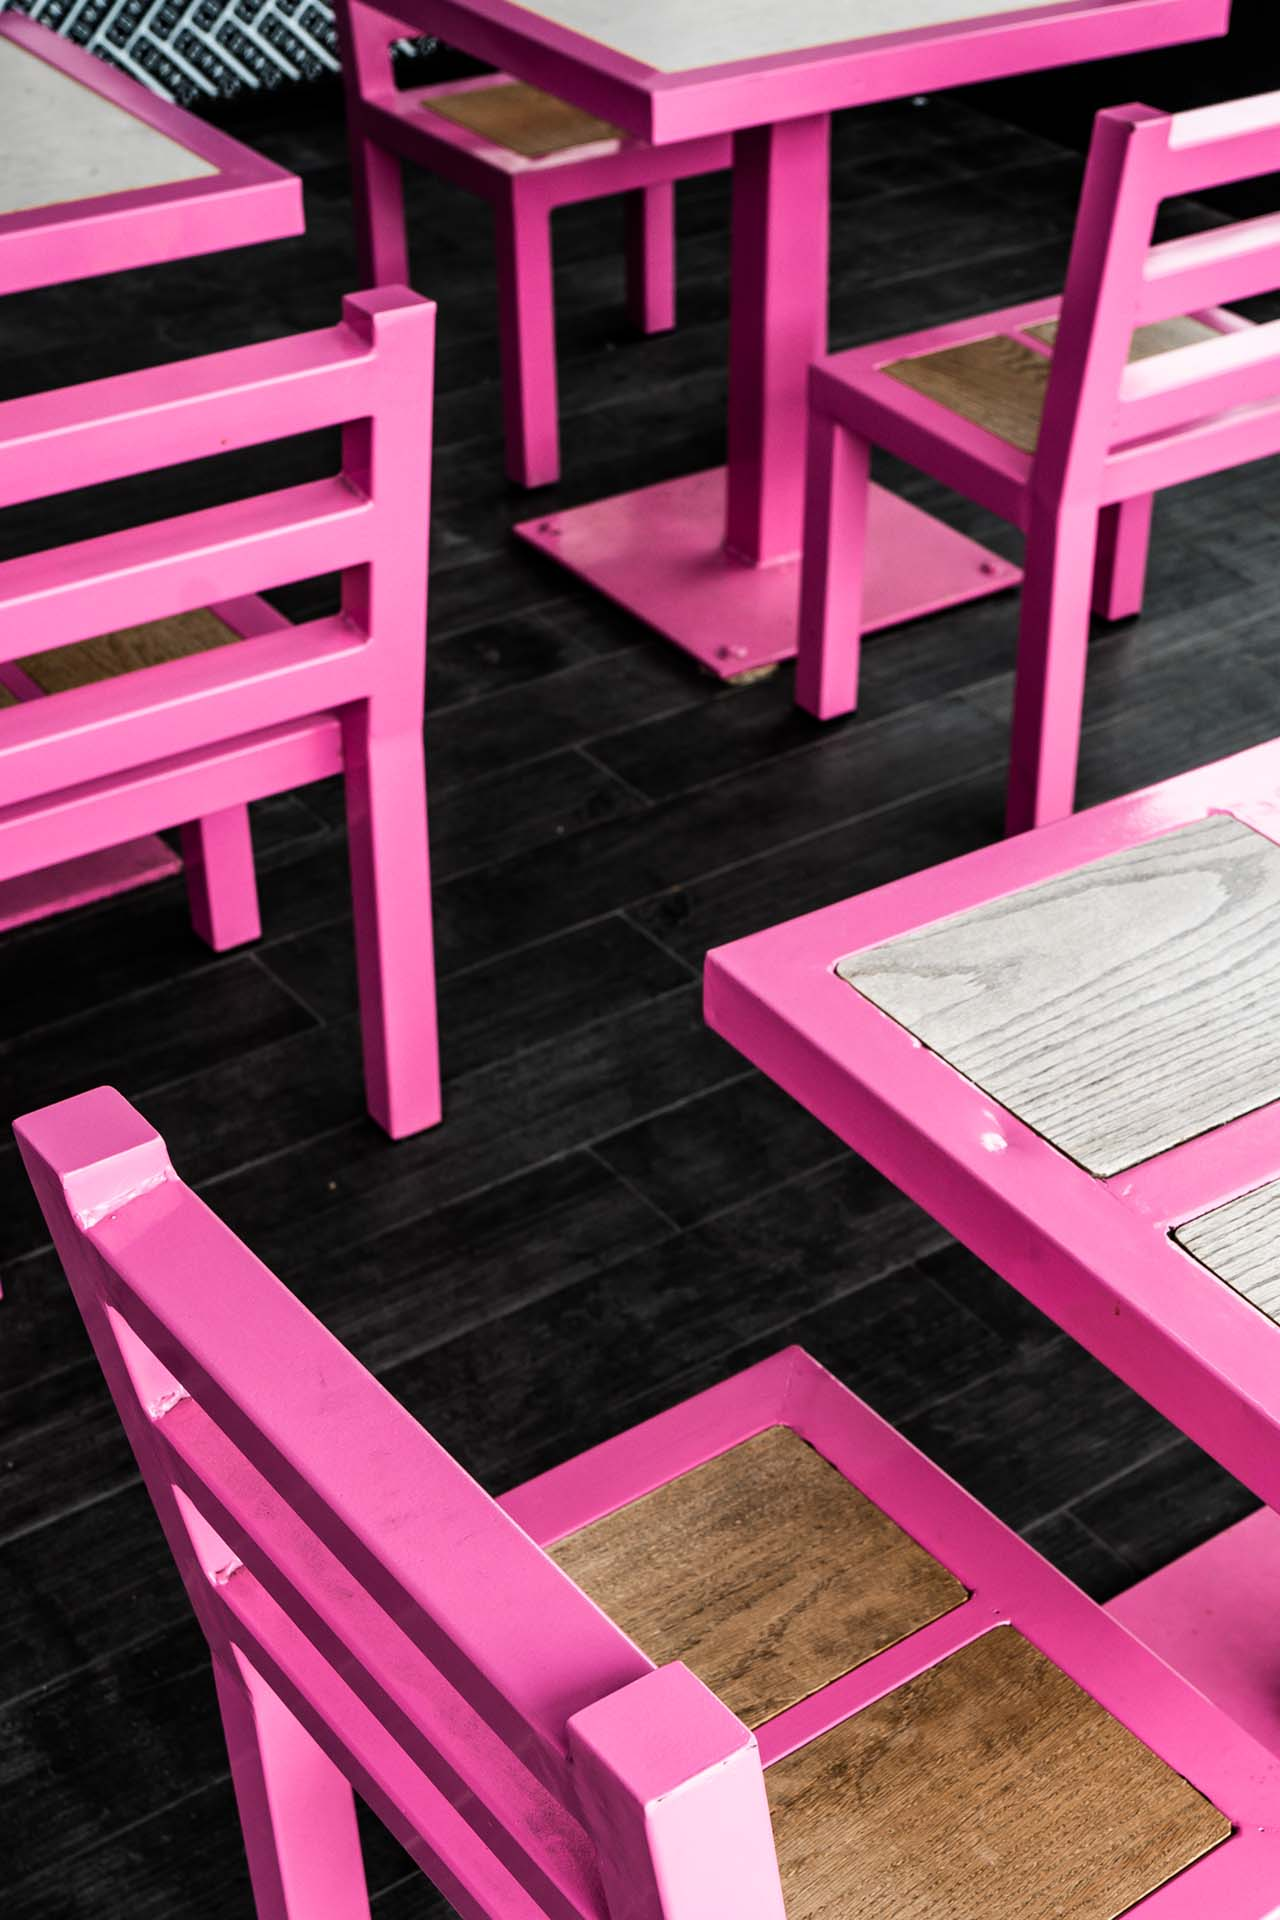 The pink tables inside the Santa Monica Coffee Commissary location